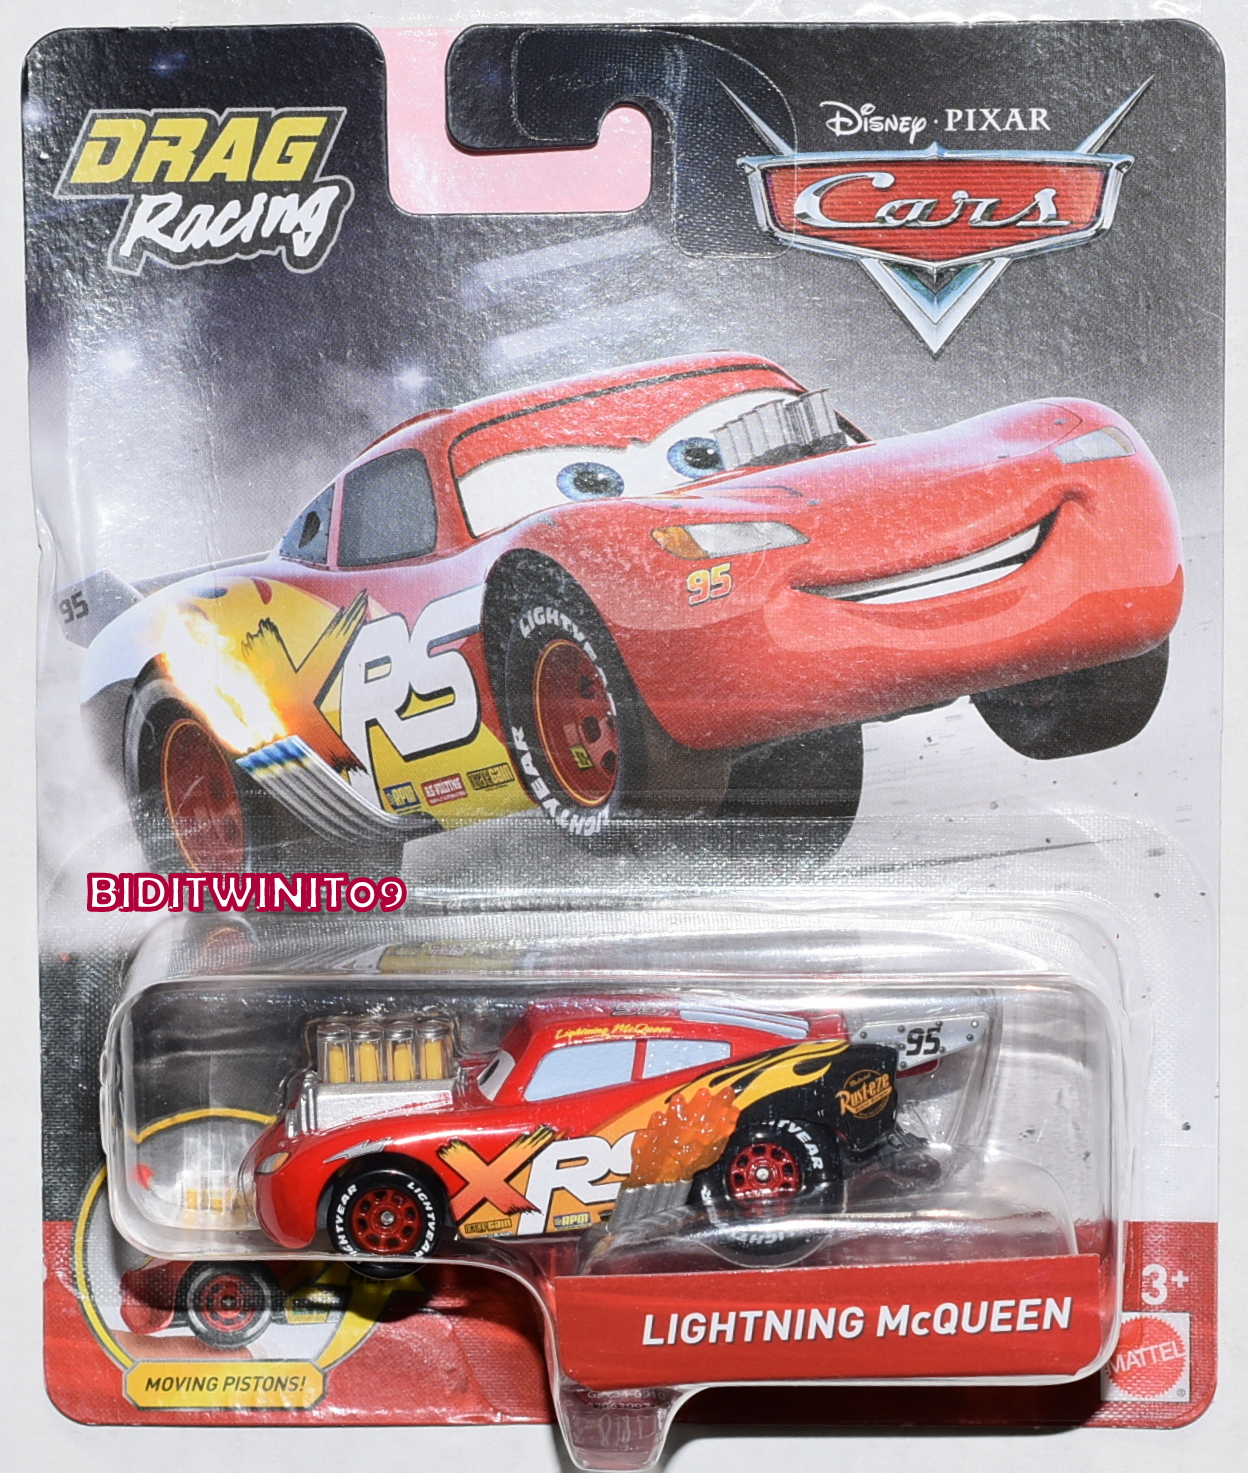 Disney Pixar Cars Drag Racing Lightning Mcqueen Xrs 0018570